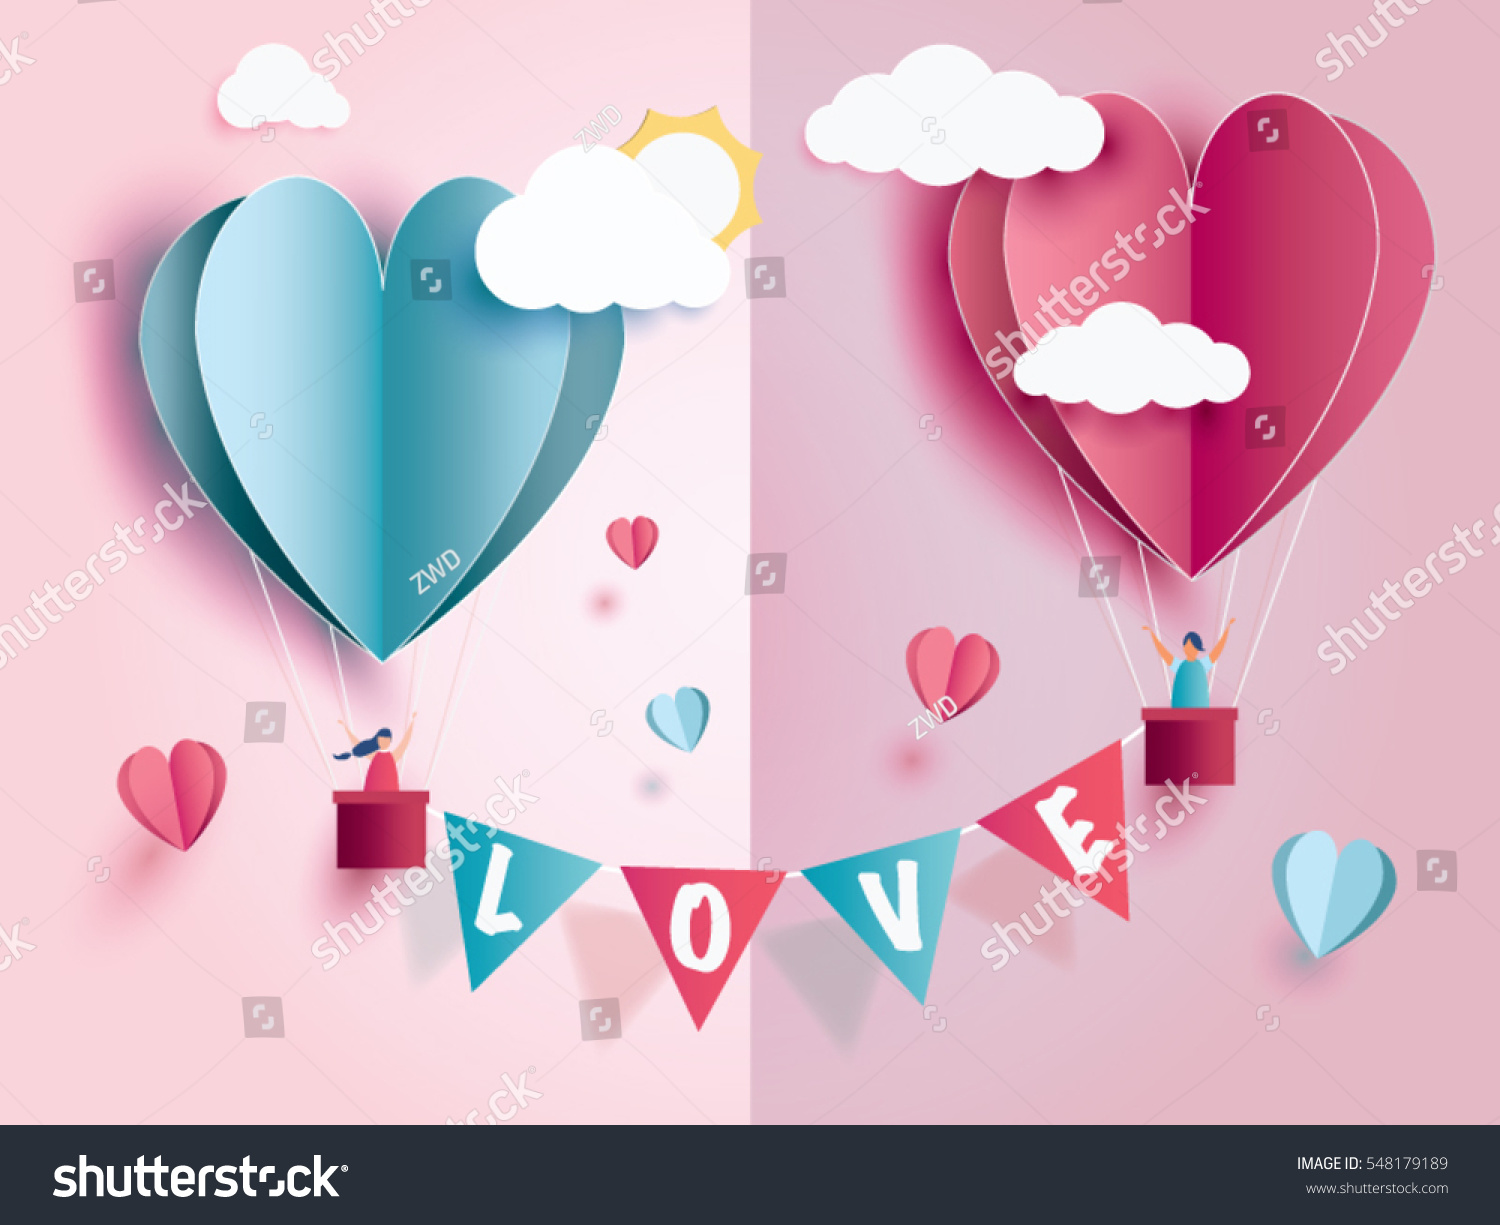 love Invitation card Valentine's day abstract background with text love and young joyful,clouds,paper cut pink heart. Vector illustration. #548179189